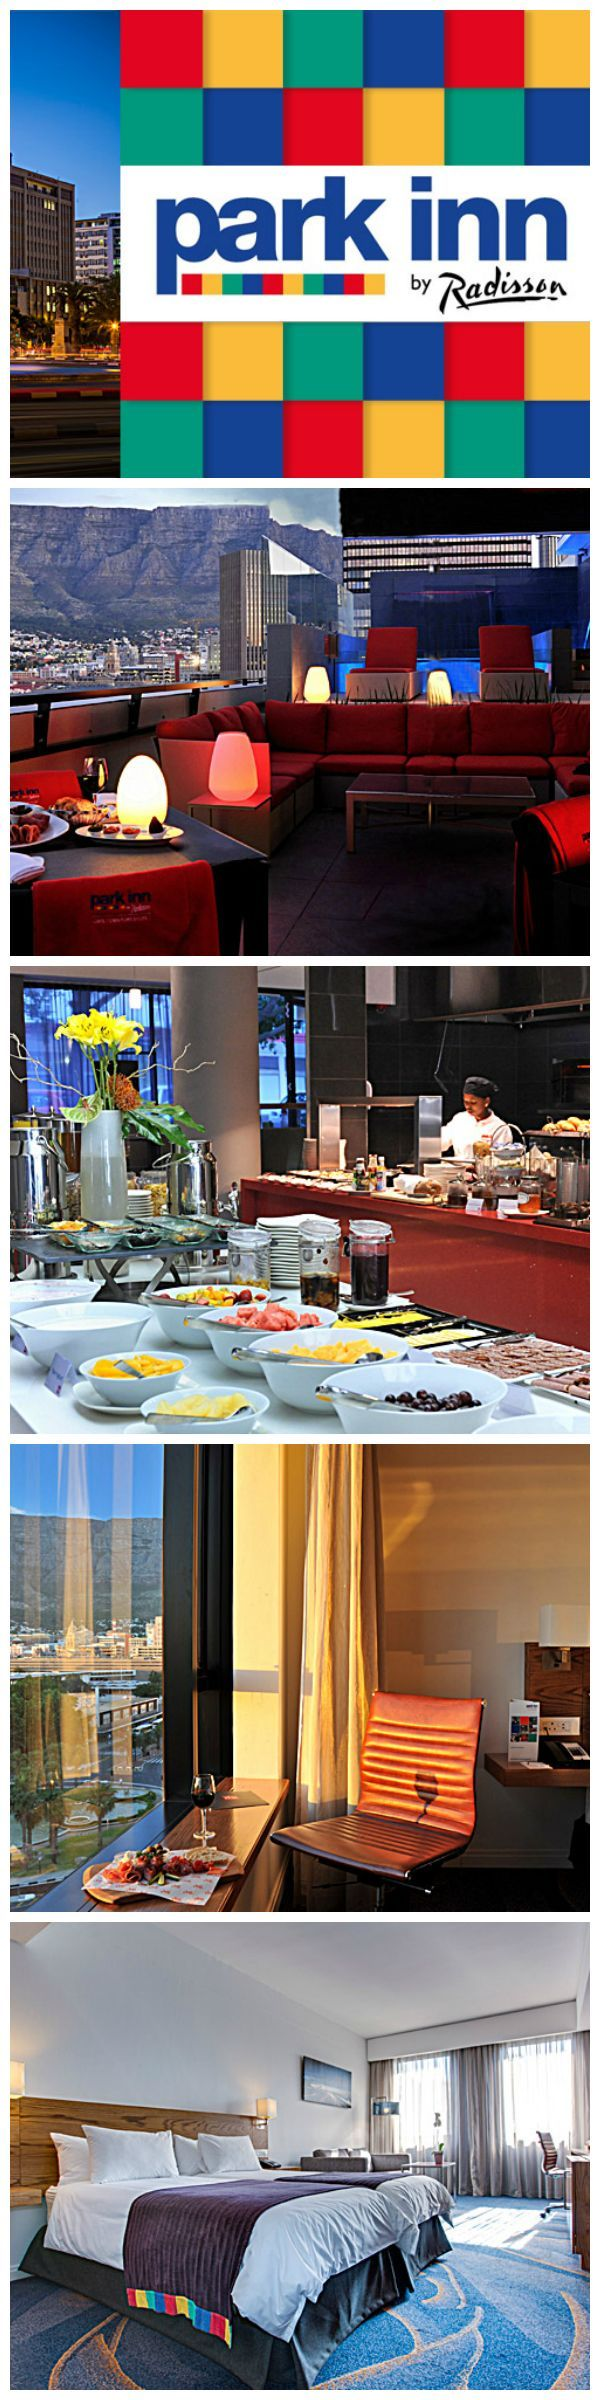 On 1 October 2014, the New 122- Room Park Inn by Radisson Cape Town Newlands Hotel opened in the Mother City's Southern Suburbs, for the benefit of those business and leisure travellers looking to stay outside the CBD. It is ultra- modern and quite high- tech. www.capetownmagazine.com/park-inn-hotel-newlands